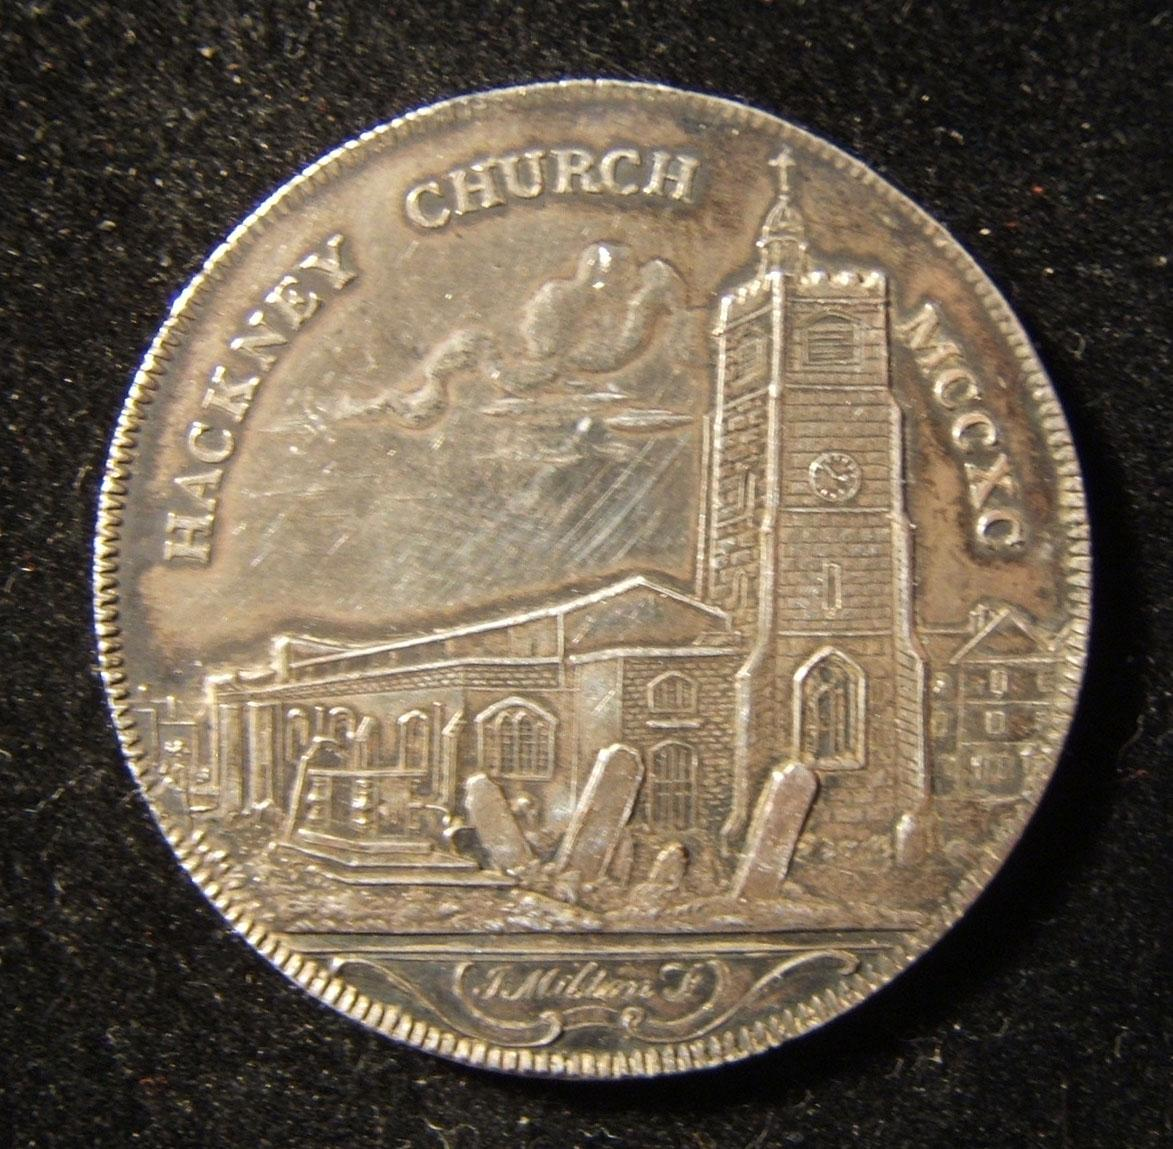 Great Britain: penny-sized Hackney Church medal of Rebello 1795 halfpenny token, 1796